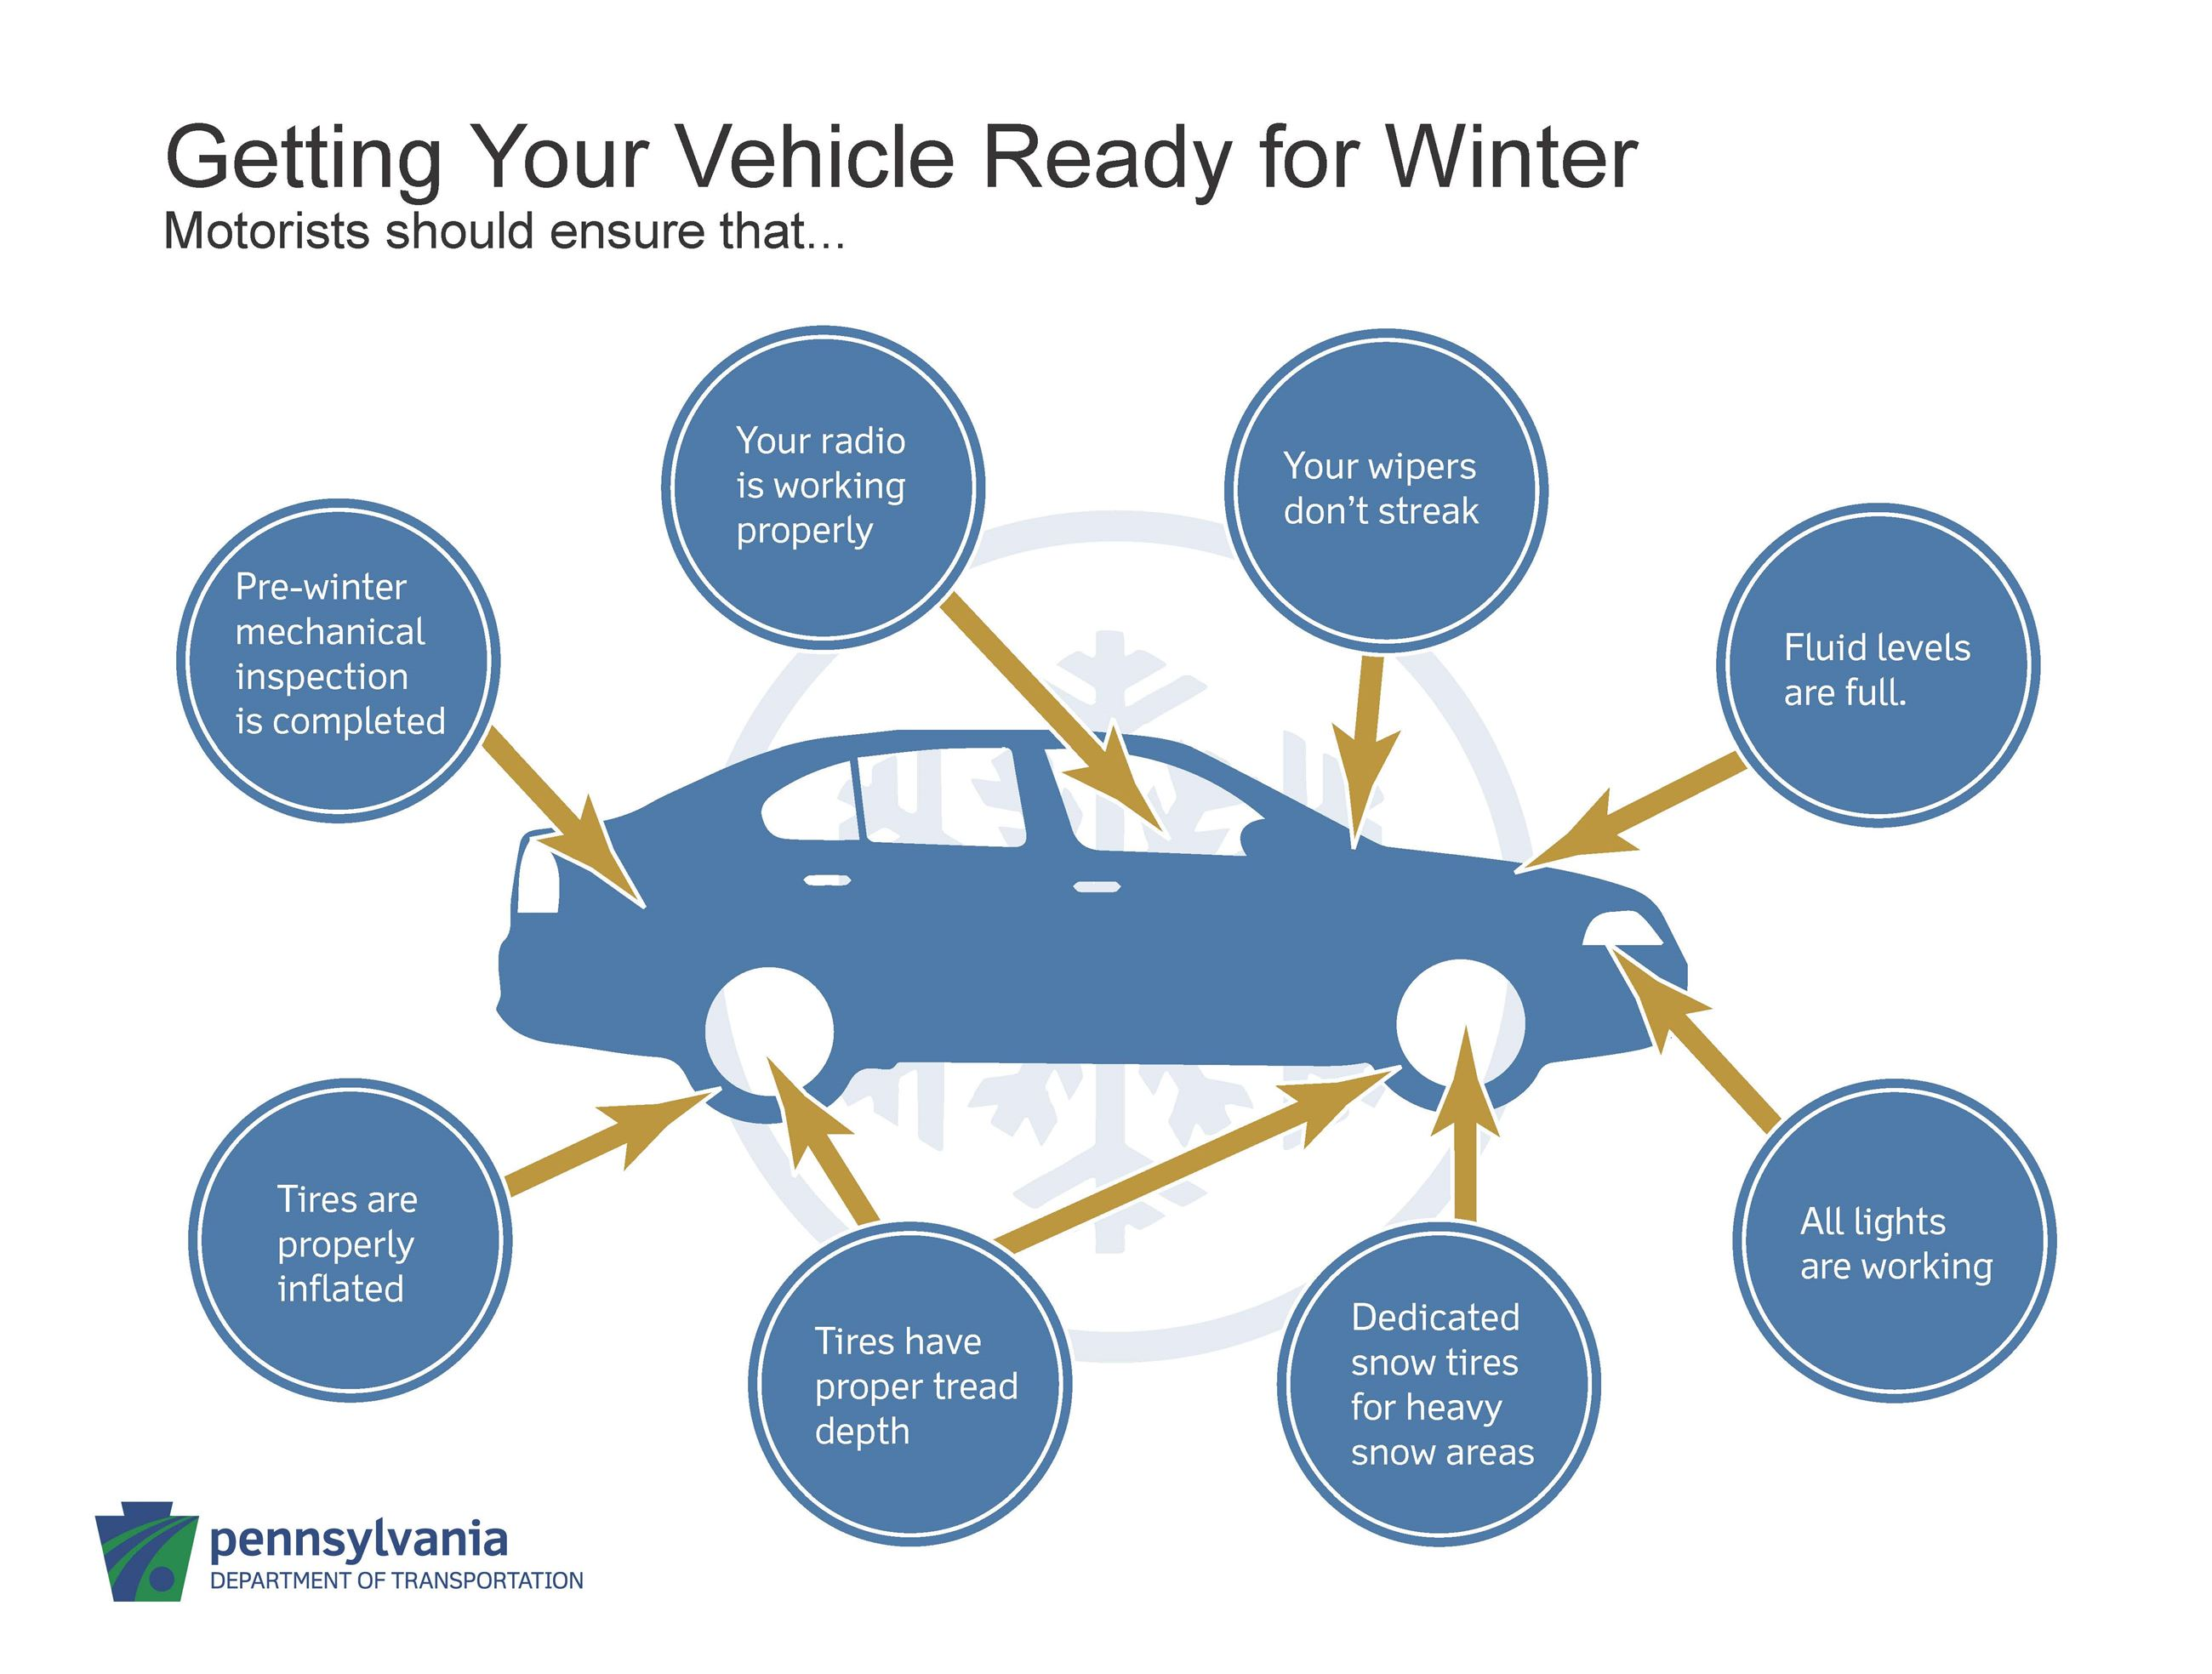 Get Vehicle Ready